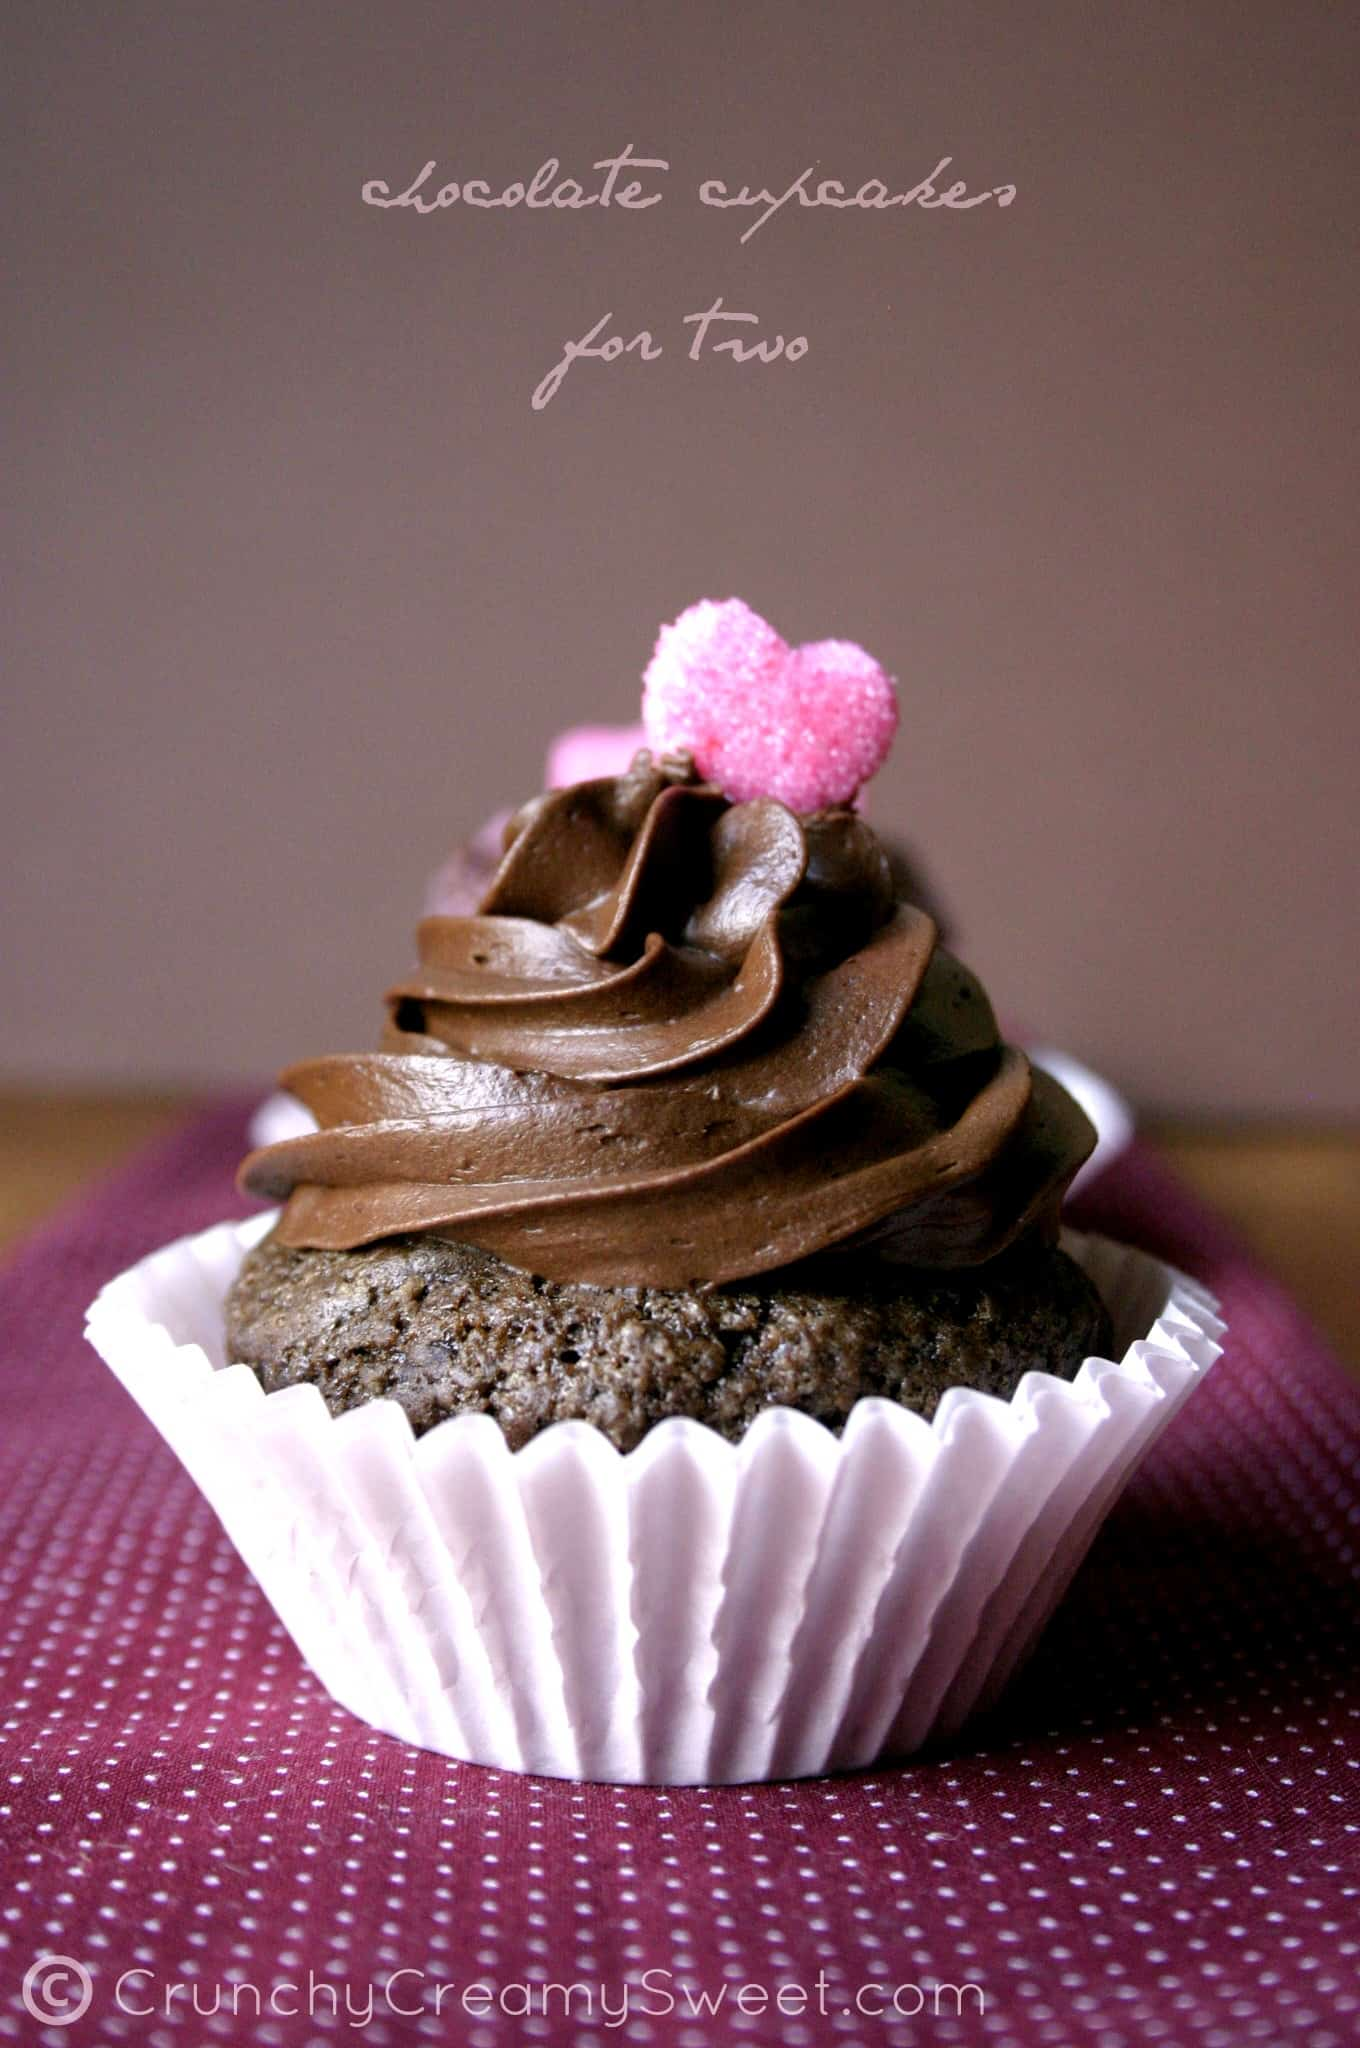 chocolate cupcakes for two A Chocolate Cupcakes For Two   Valentines Day Celebration Event